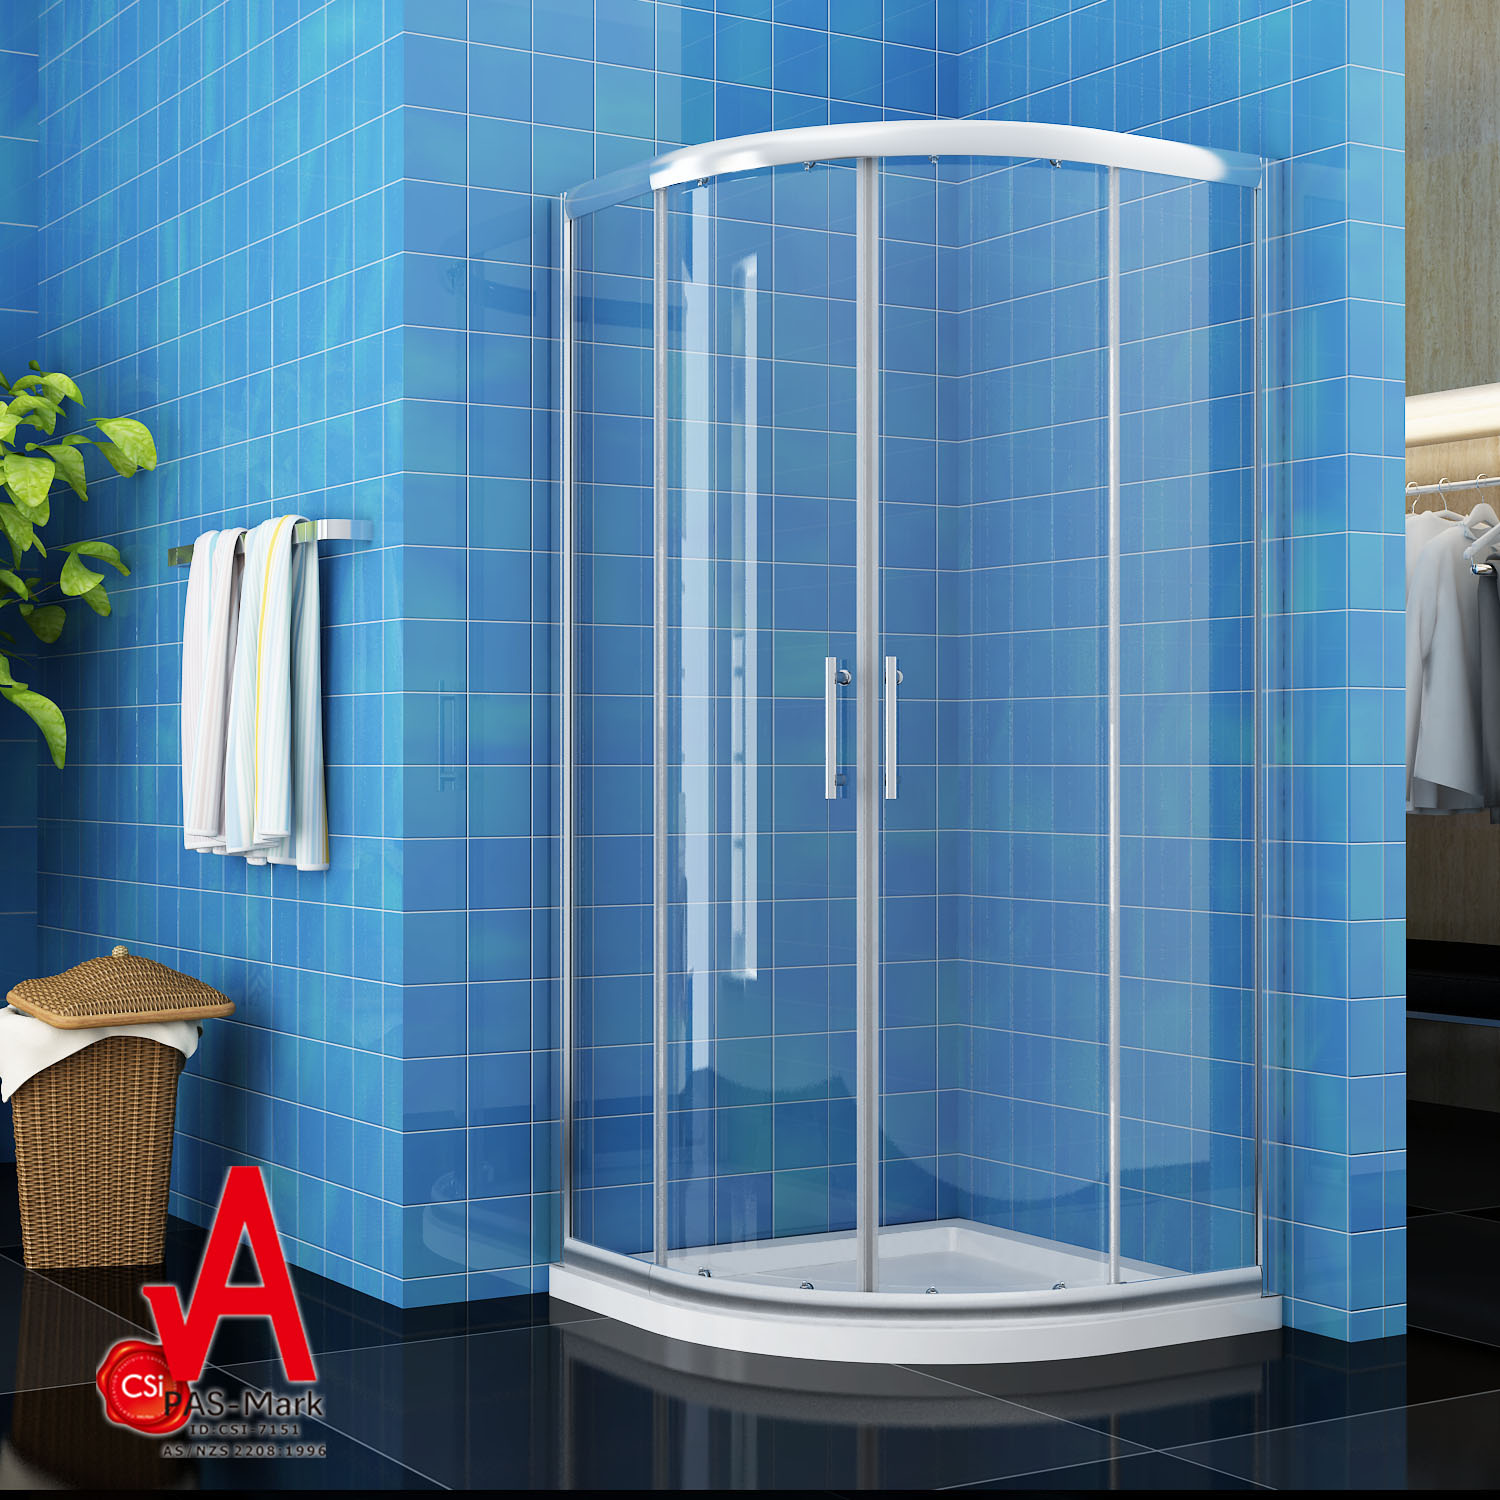 1000X1000X1900mm Curved Shower Screen Enclosure Cabin Square ...